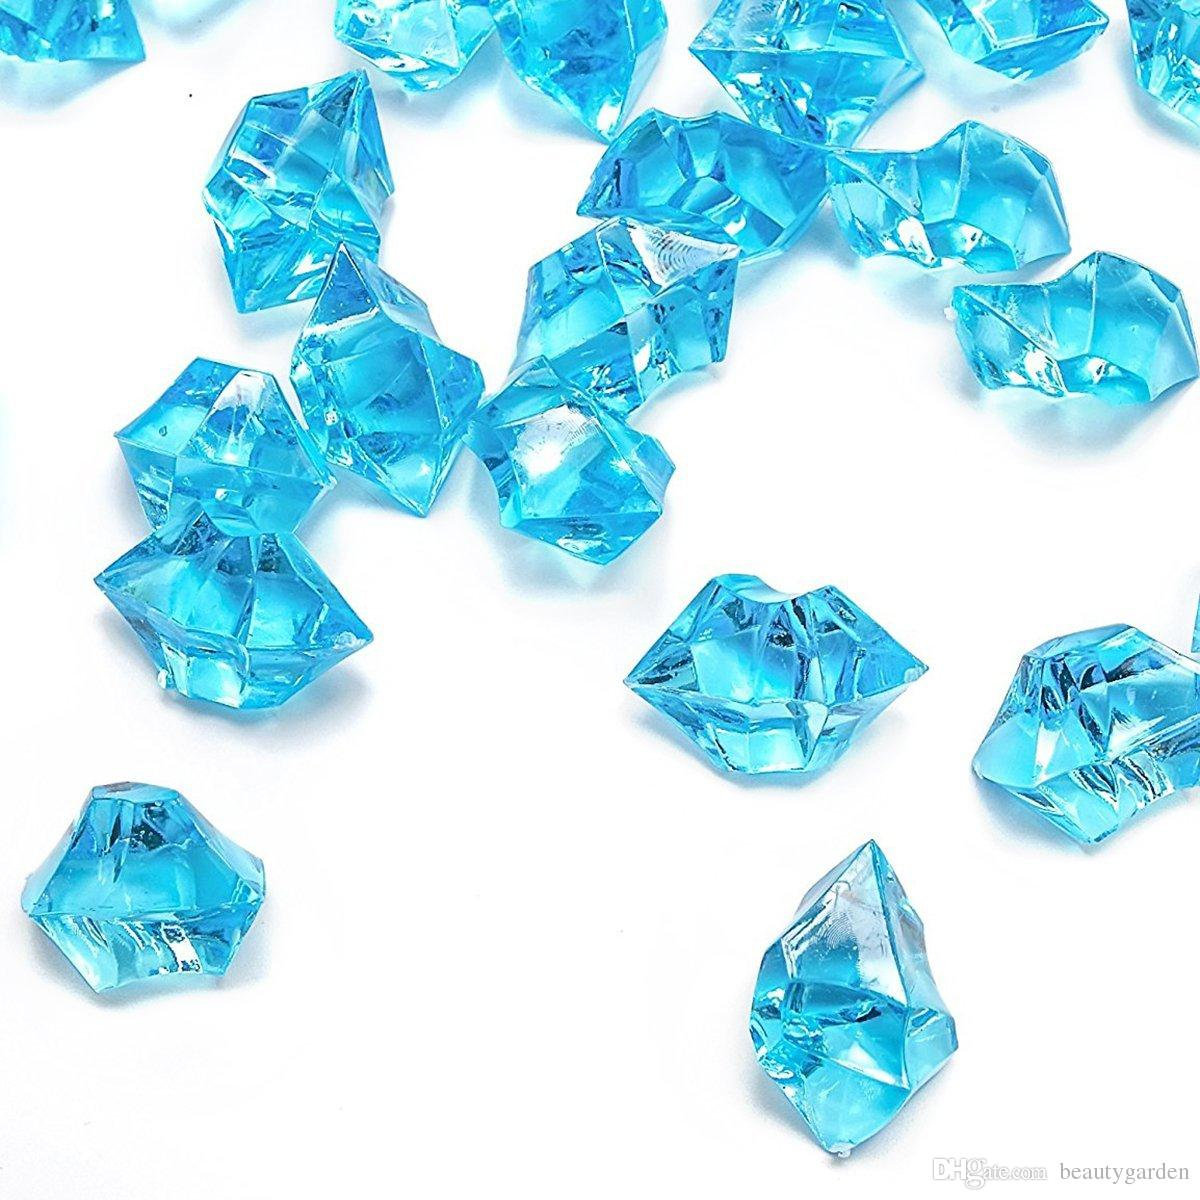 Acrylic gems ice crystal rocks for vase fillers party for Plastic gems for crafts